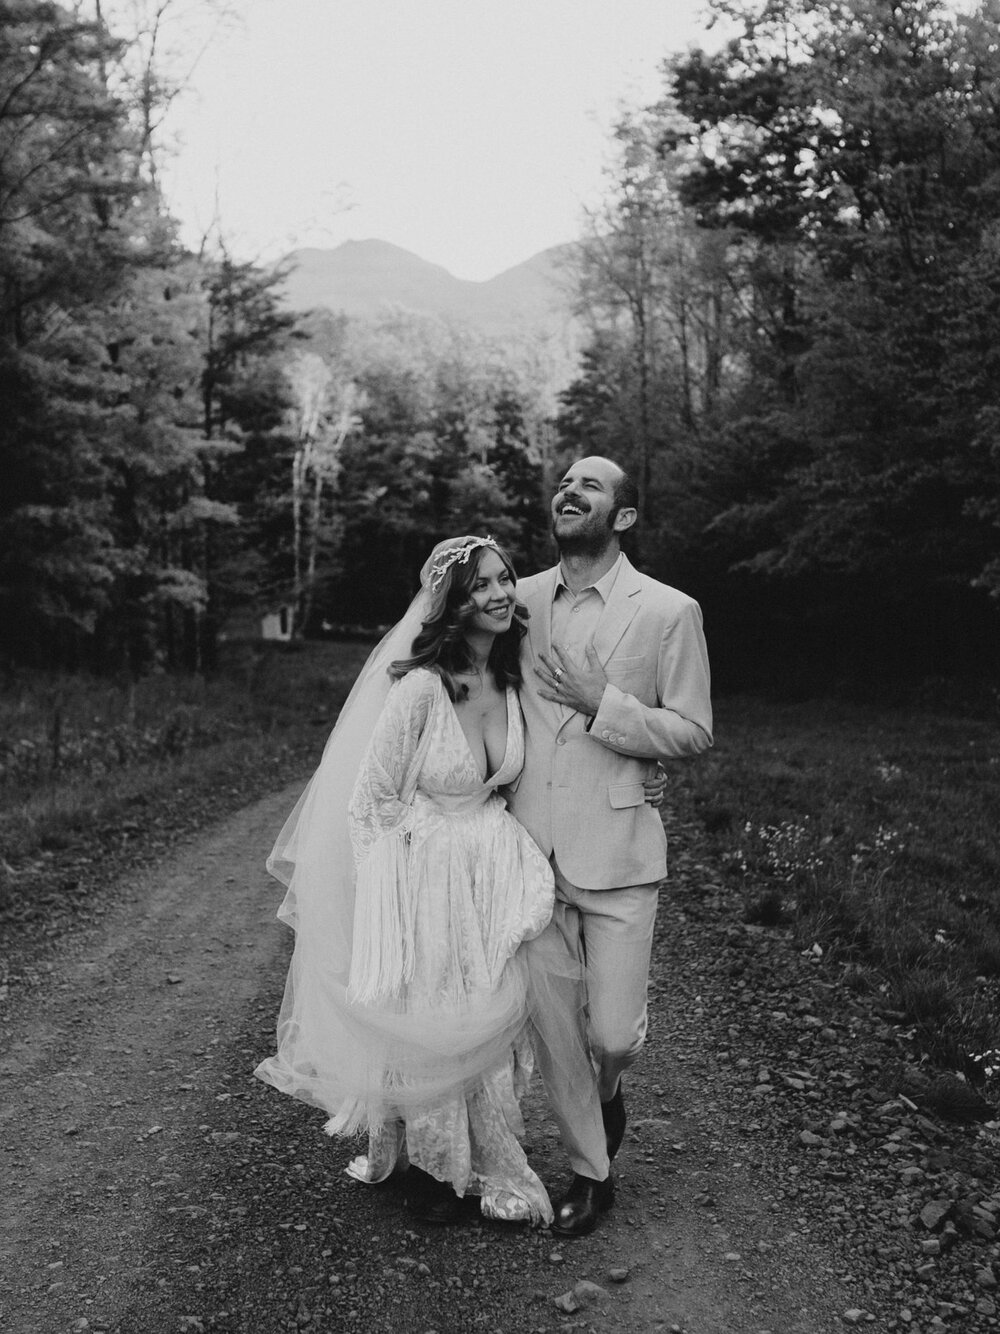 Deer_Mountain_Inn_Wedding_Chellise_Michael_Photography-3.jpg